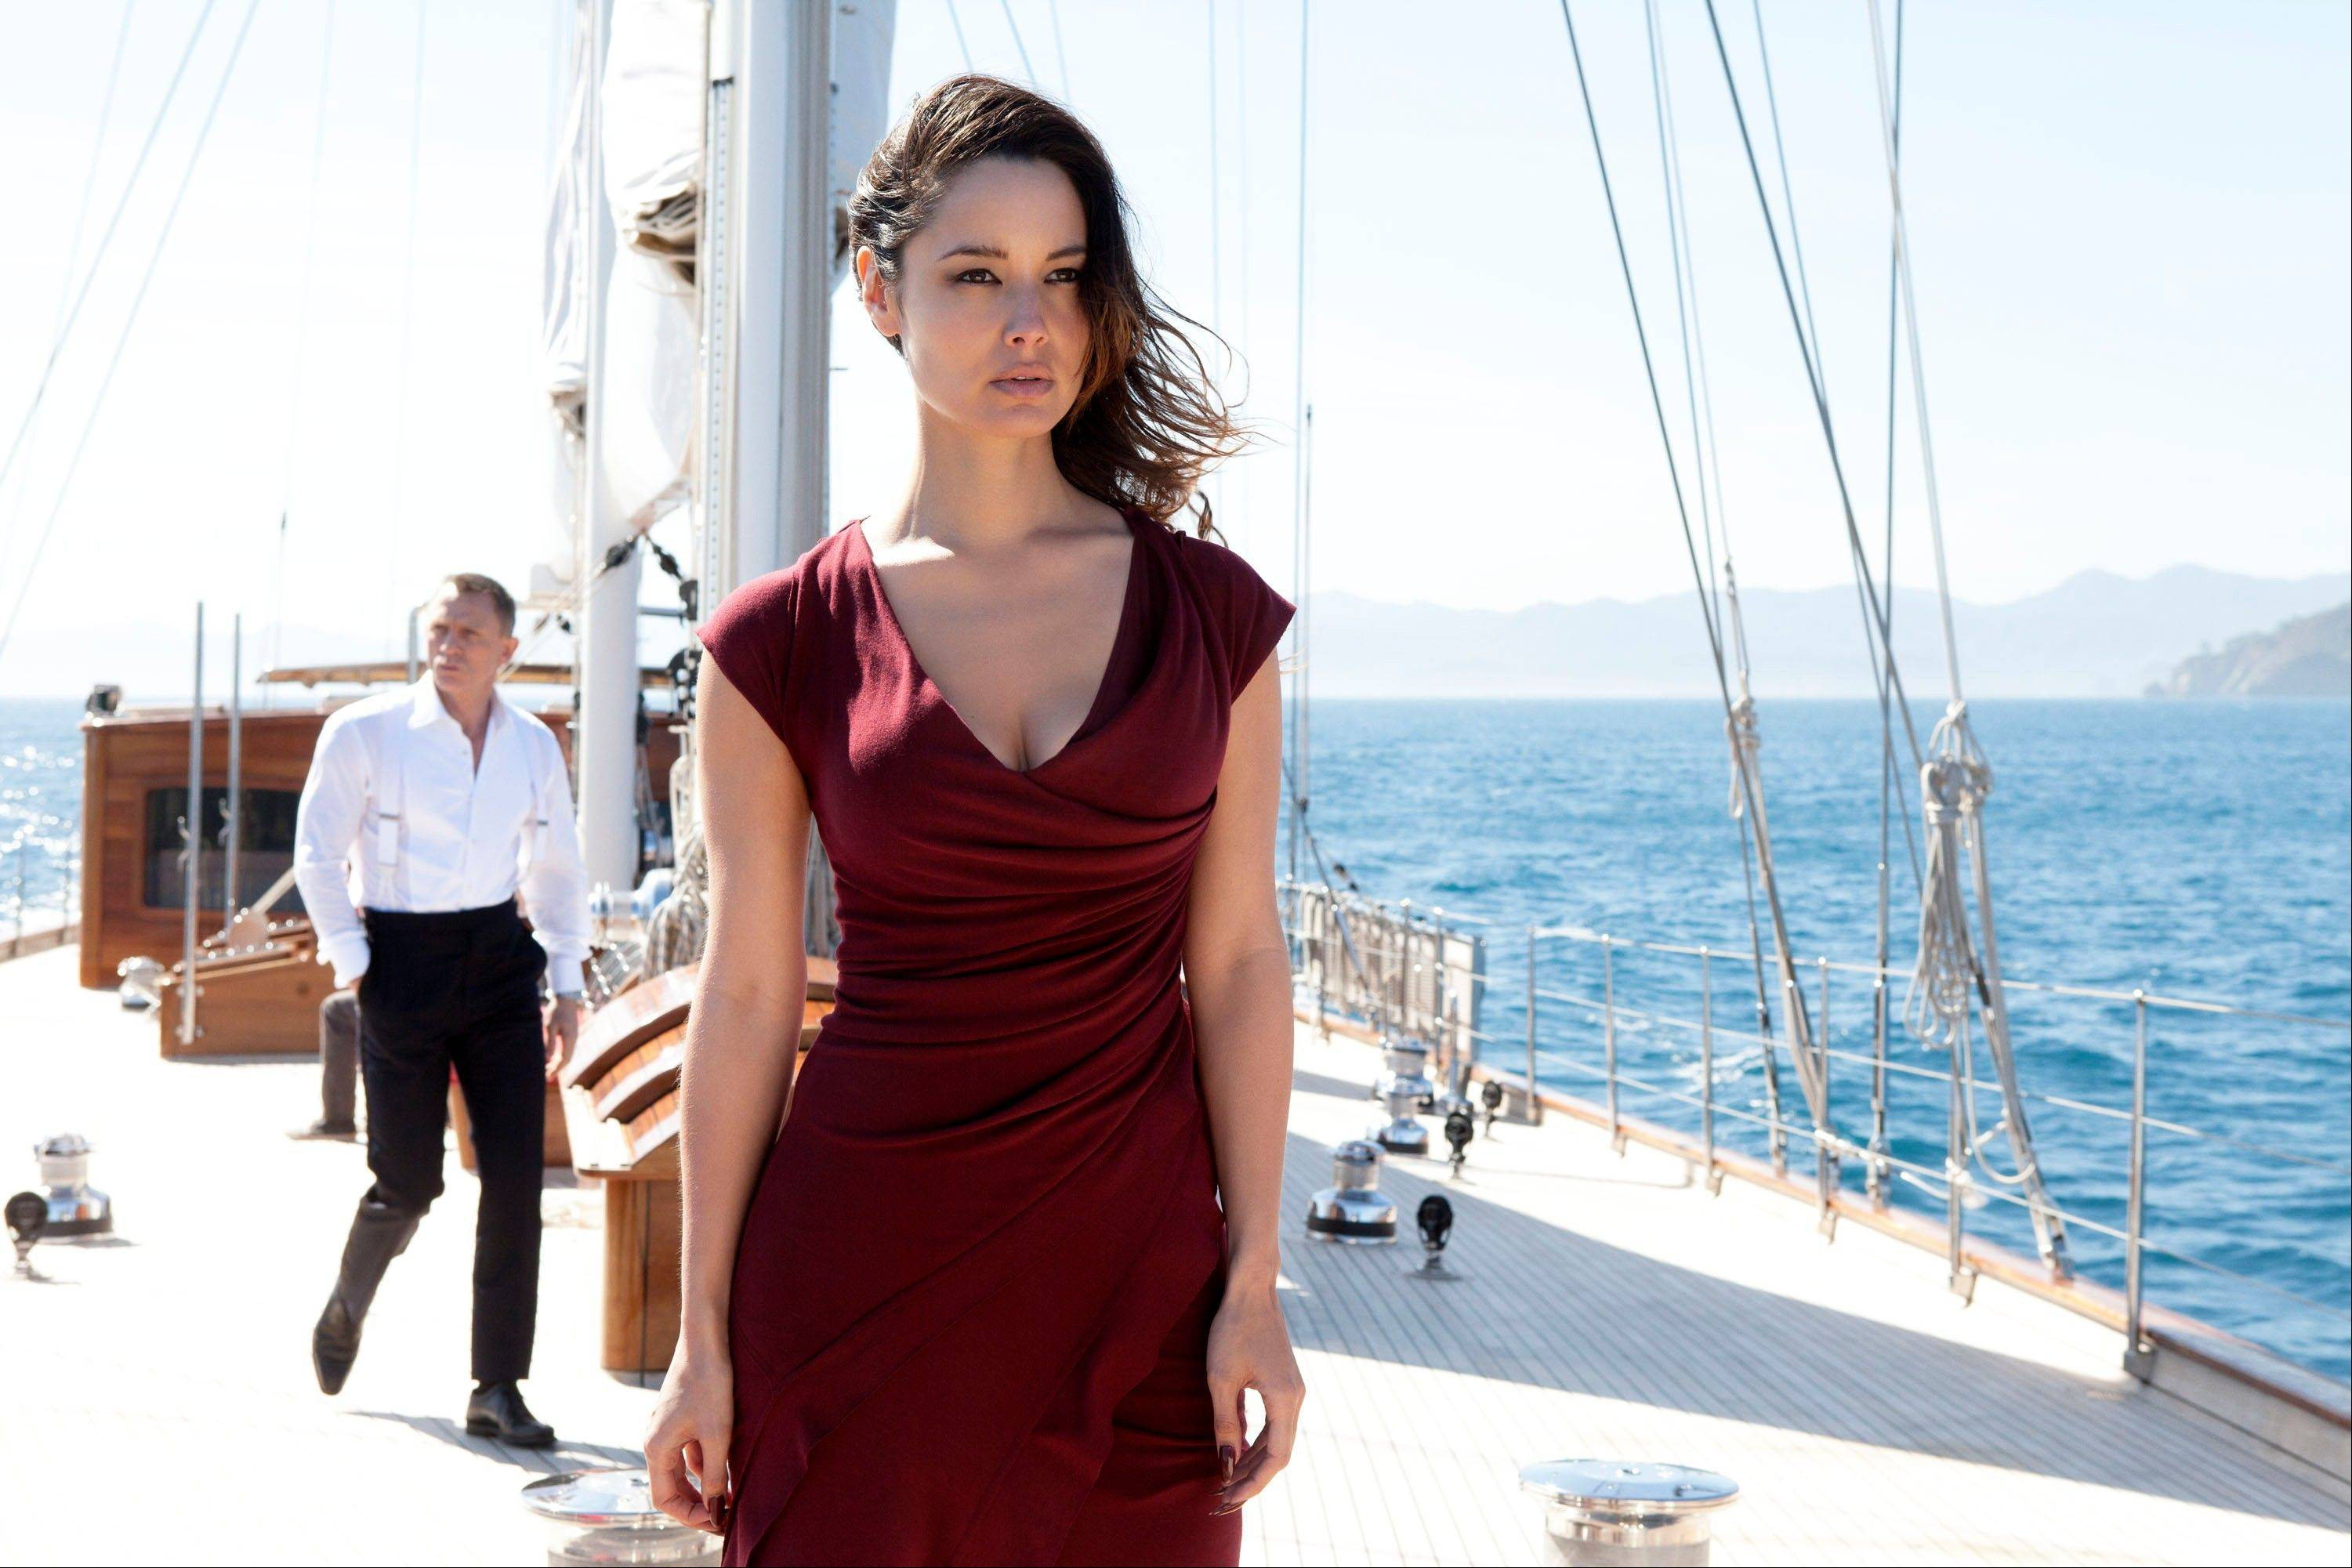 "This film image released by Sony Pictures shows Berenice Marlohe in a scene from the film ""Skyfall."" Costume designer Jany Temime says her mantra for the entire wardrobe of �Skyfall,� which opens Friday, was �iconic for 2012.� For Marlohe, Temime envisioned an Ava Gardner type. She required two knockout gowns, one a second-skin L'Wren Scott number that Marlohe had to be sewn into each morning, and a red, slinky Donna Karan."